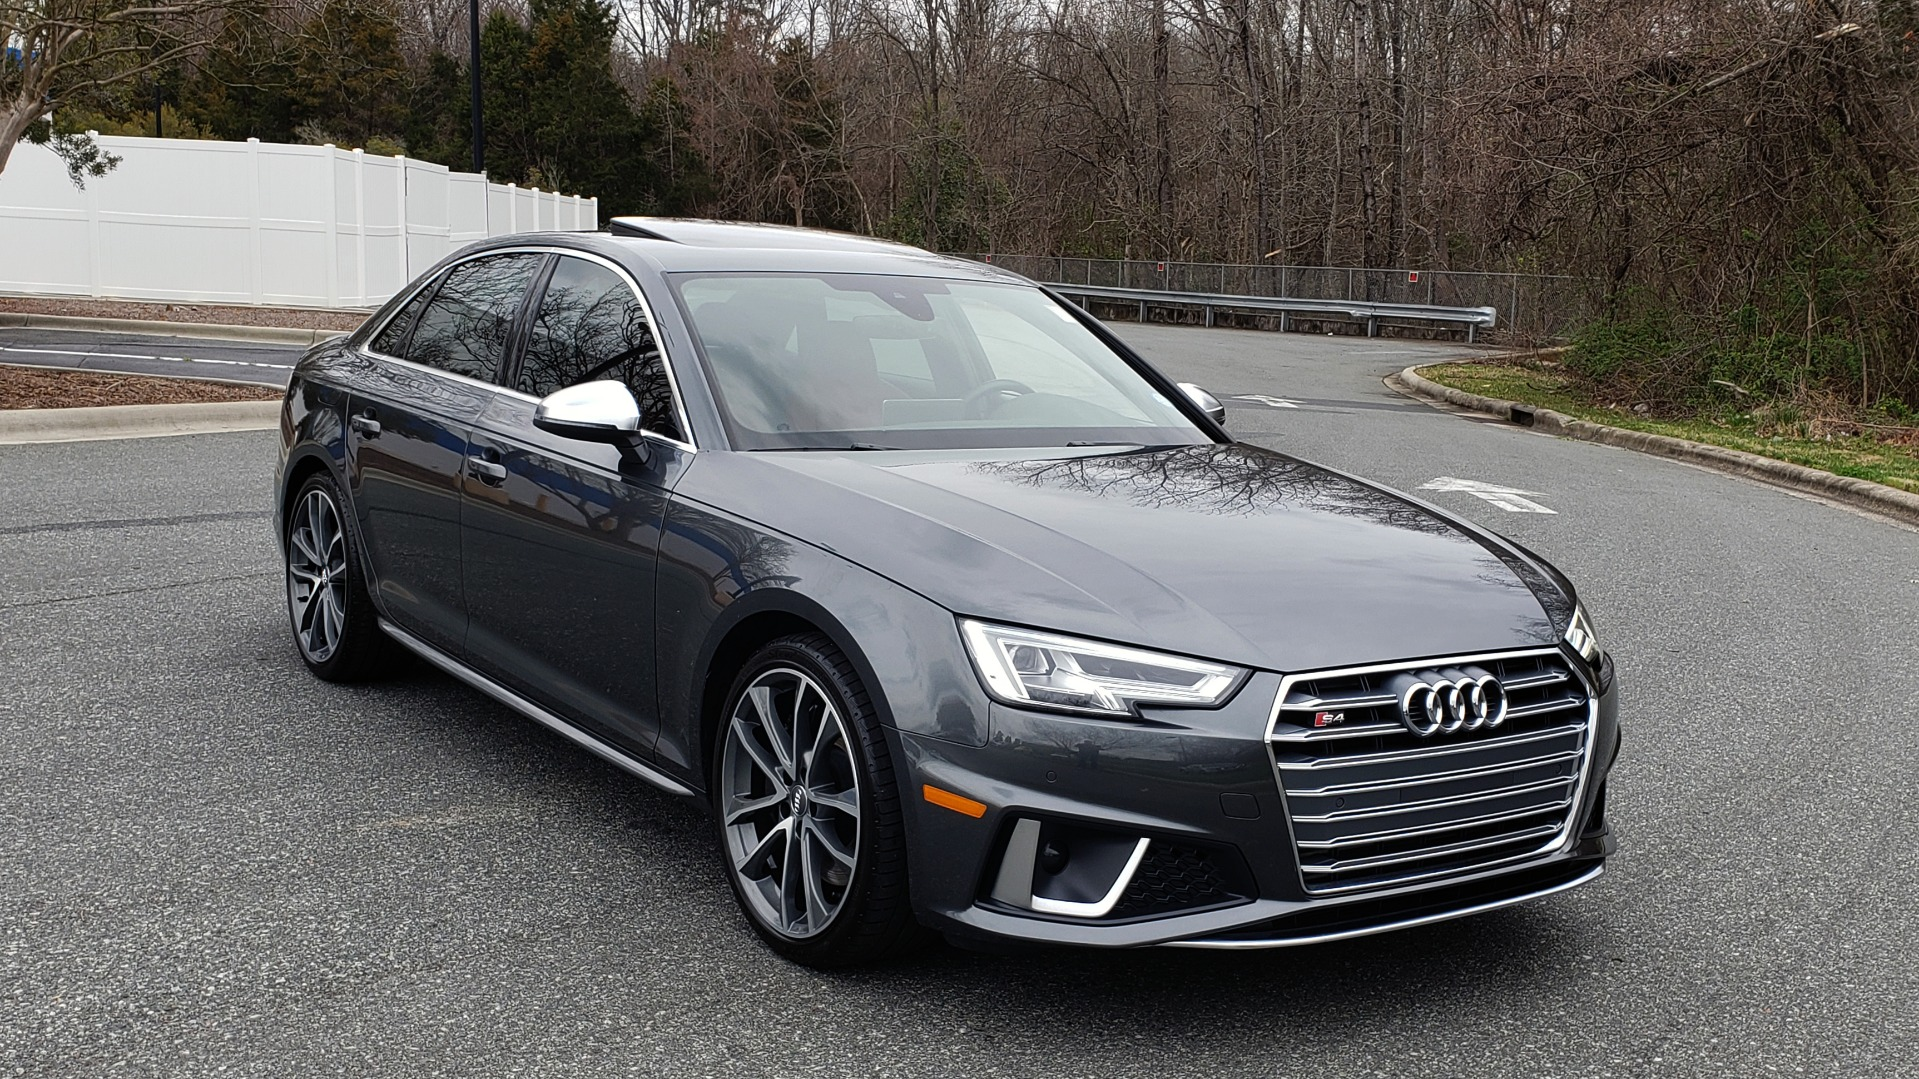 Used 2019 Audi S4 PREMIUM PLUS / AWD / NAV / SUNROOF / B&O SOUND / REARVIEW for sale Sold at Formula Imports in Charlotte NC 28227 4